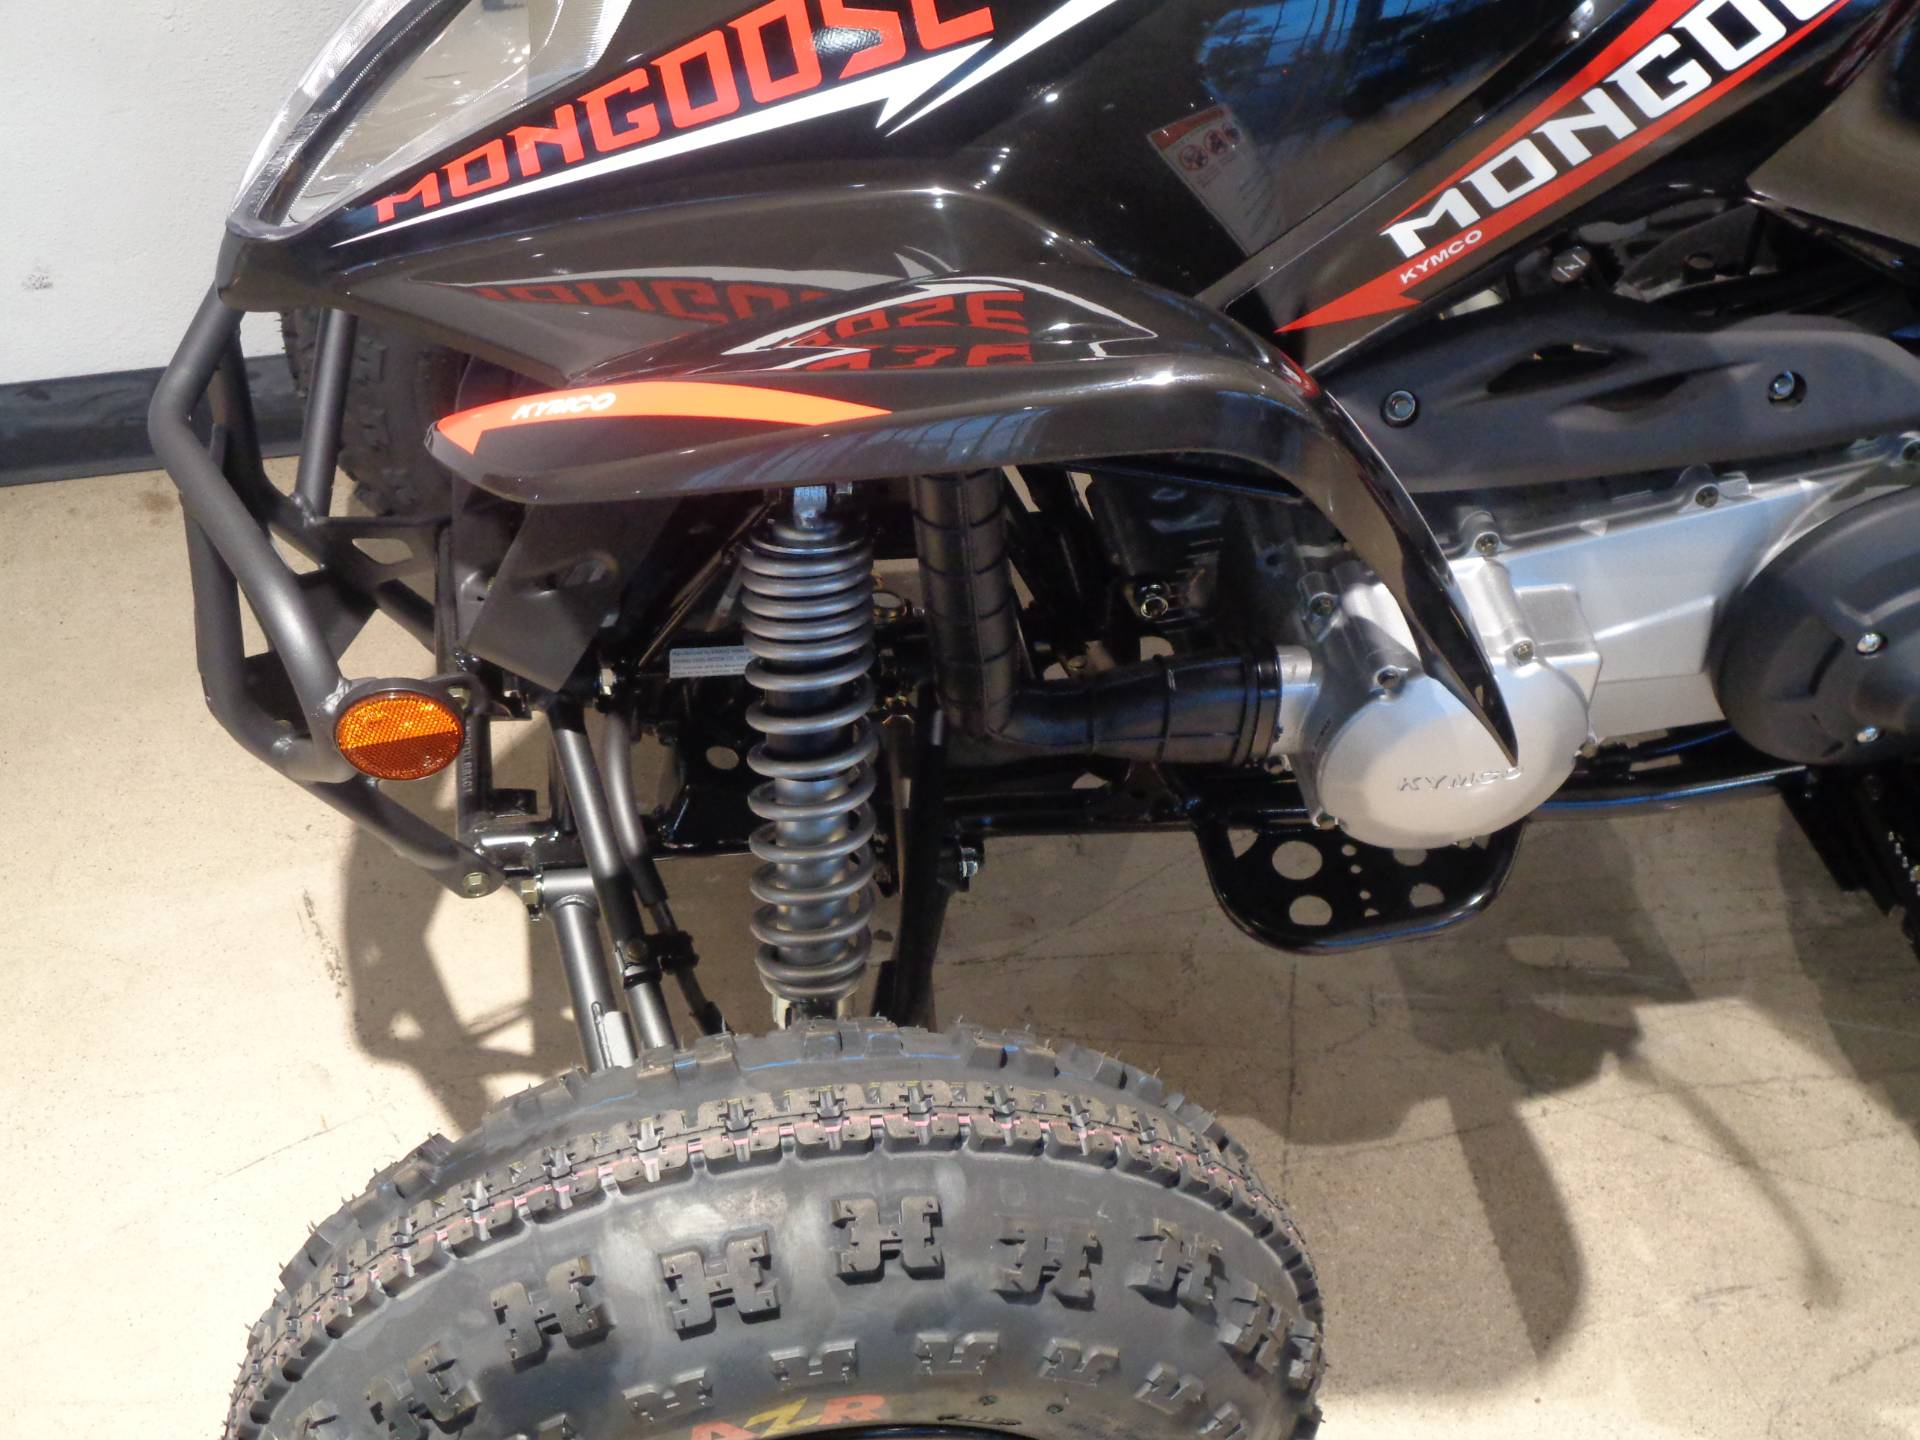 2020 Kymco Mongoose 270 in Chula Vista, California - Photo 19